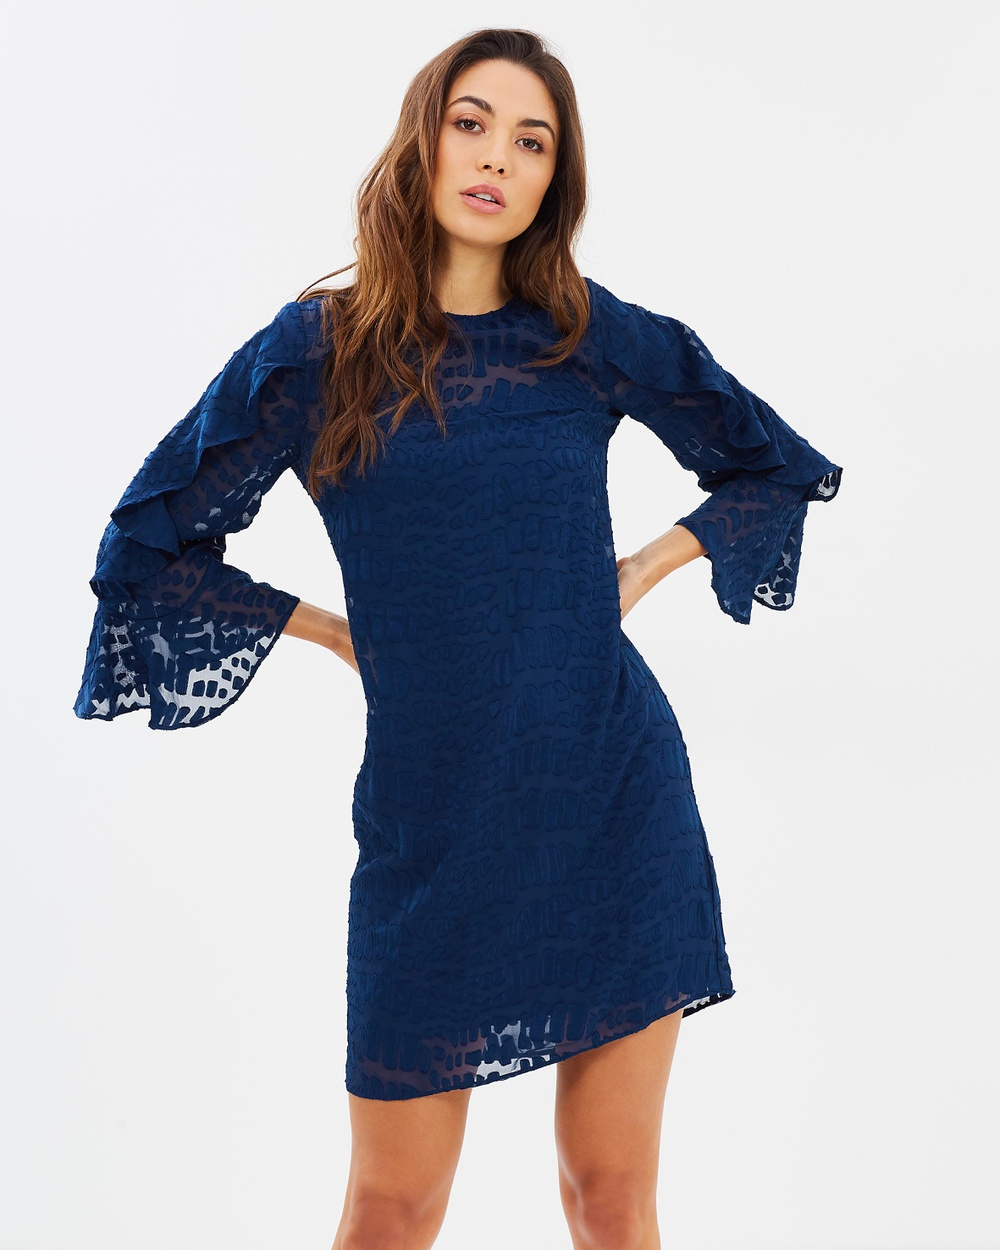 Cooper St Into The Pines Shift Dress Dresses Navy Into The Pines Shift Dress